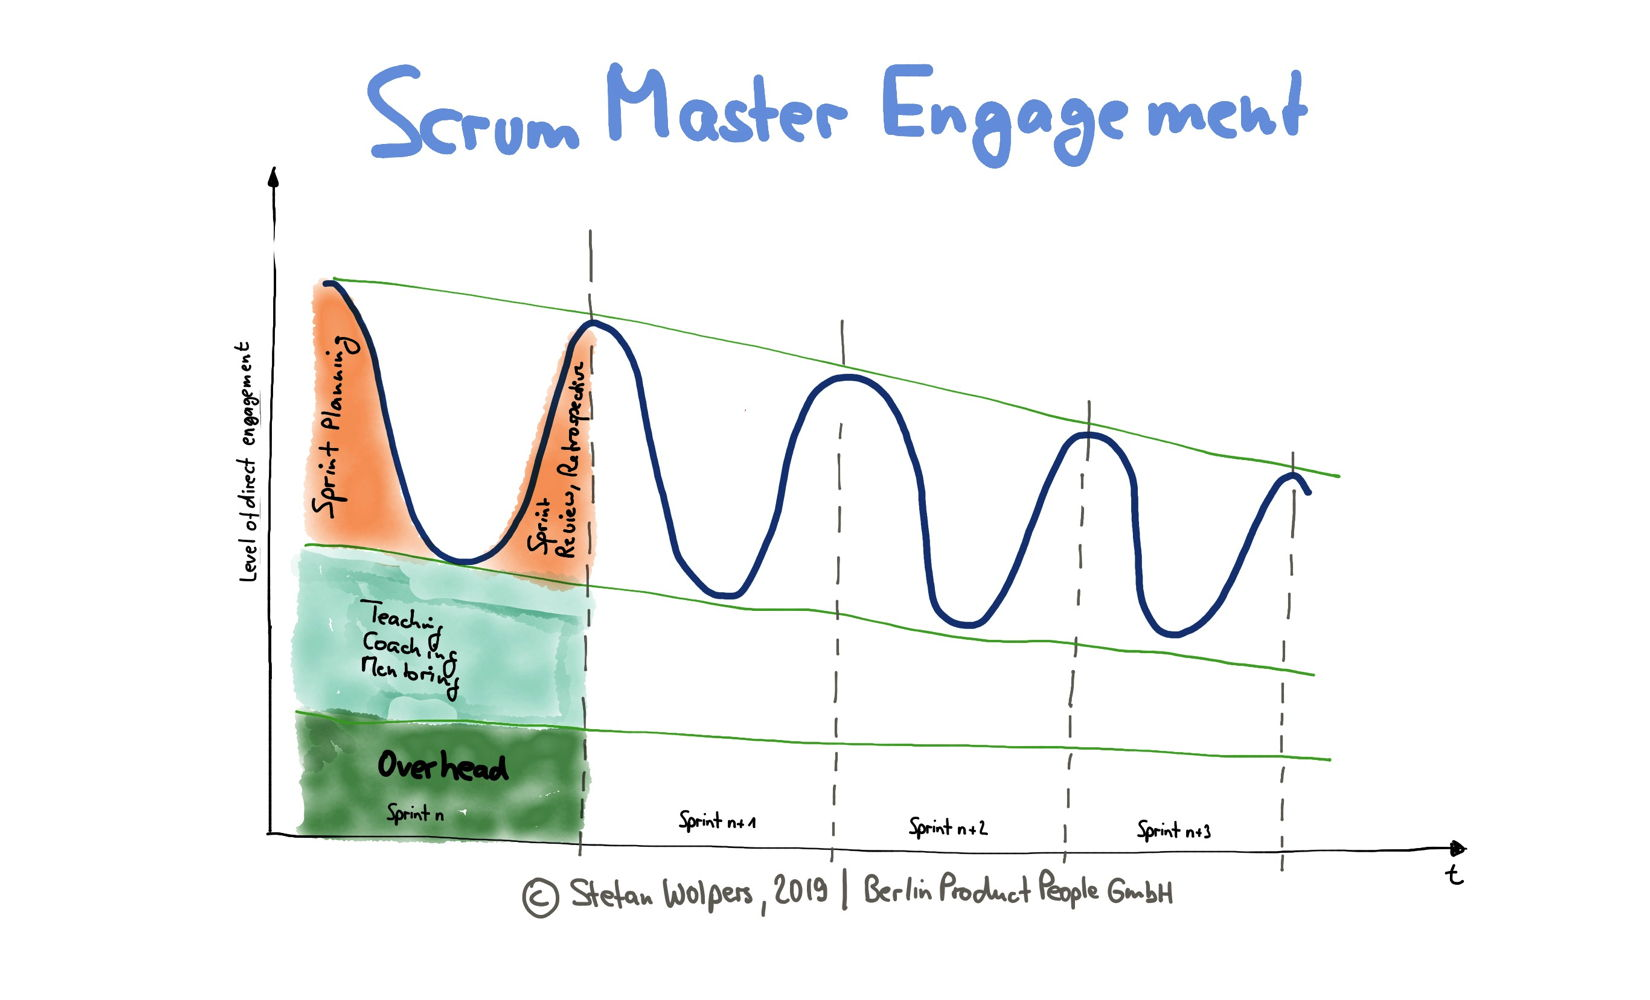 Scrum Master Engagement Patterns: The Remote/Outsourced Development Team